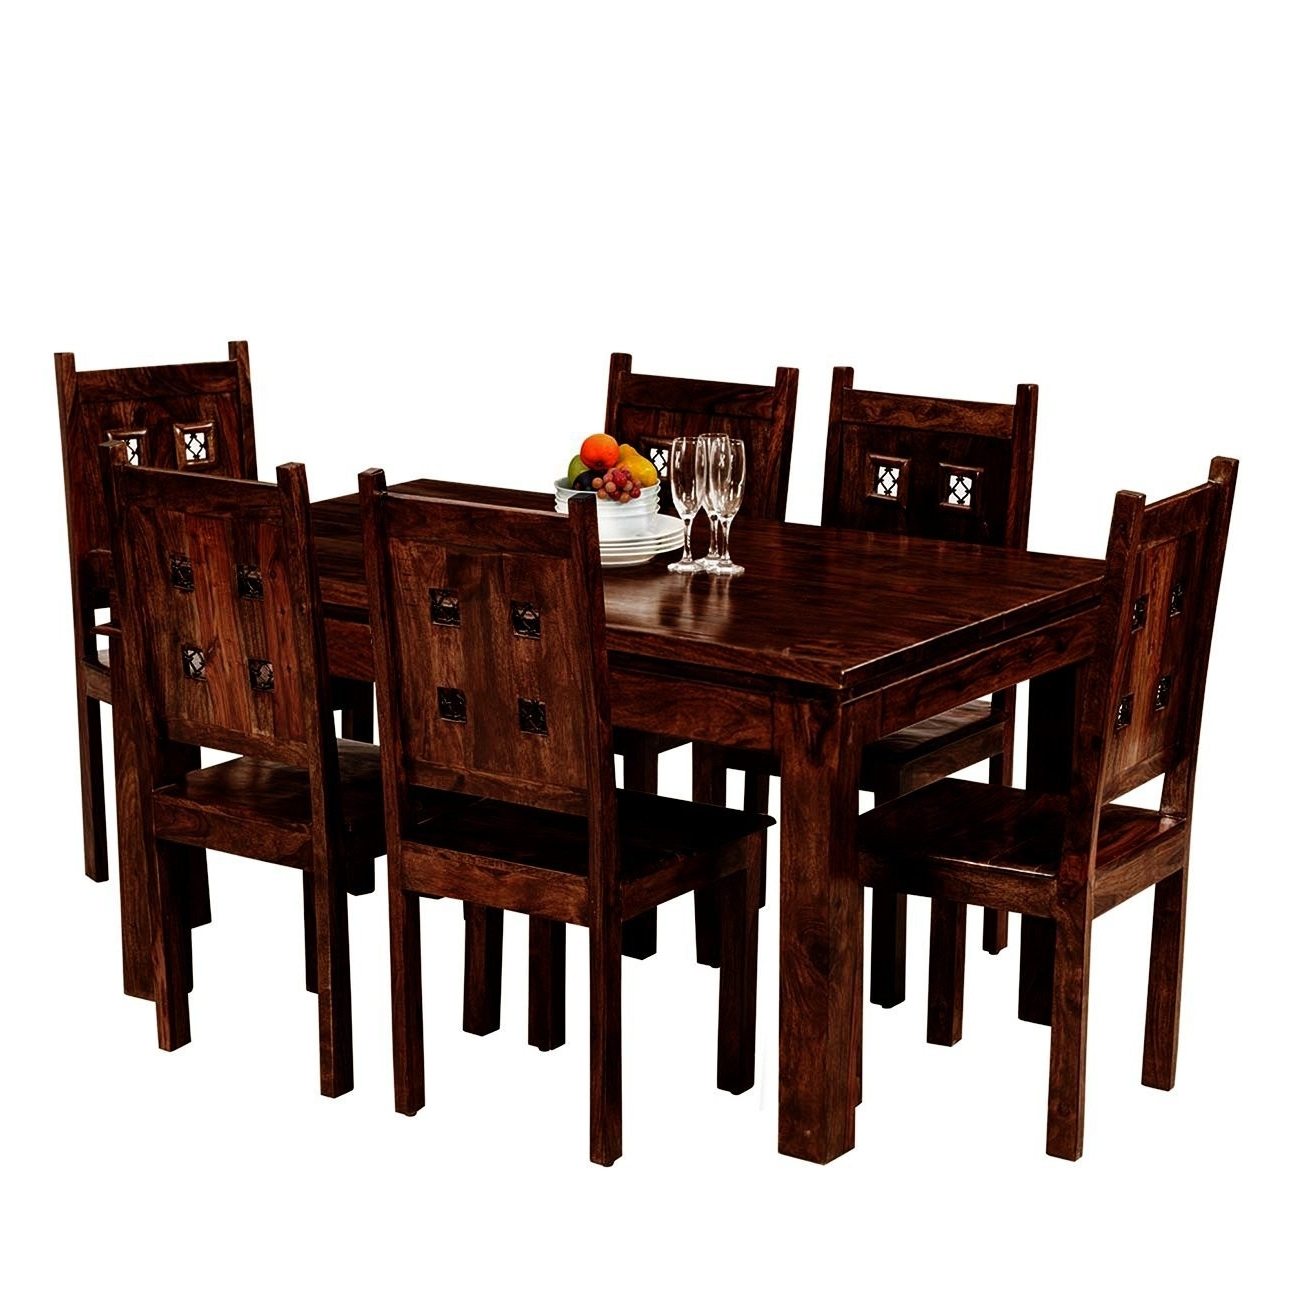 Most Recently Released Buy Wholesale Aprodz Salmanos 6 Seater Dining Table Set At Best Throughout Six Seater Dining Tables (View 21 of 25)